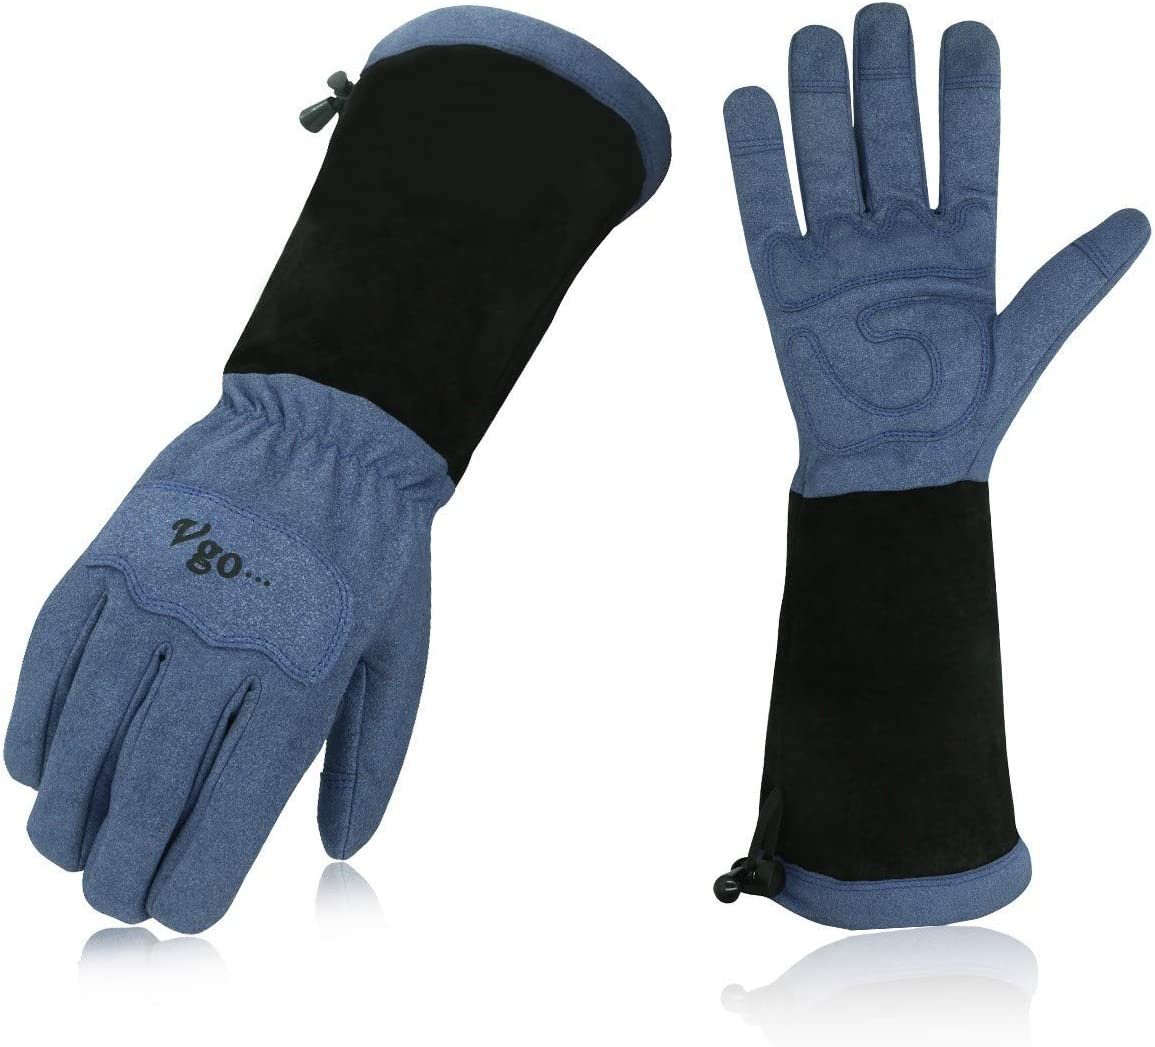 Vgo Men's Synthetic Leather Palm with Long Pig Split Leather Cuff Rose Garden Gloves (Size XL, Blue,SL6592M)